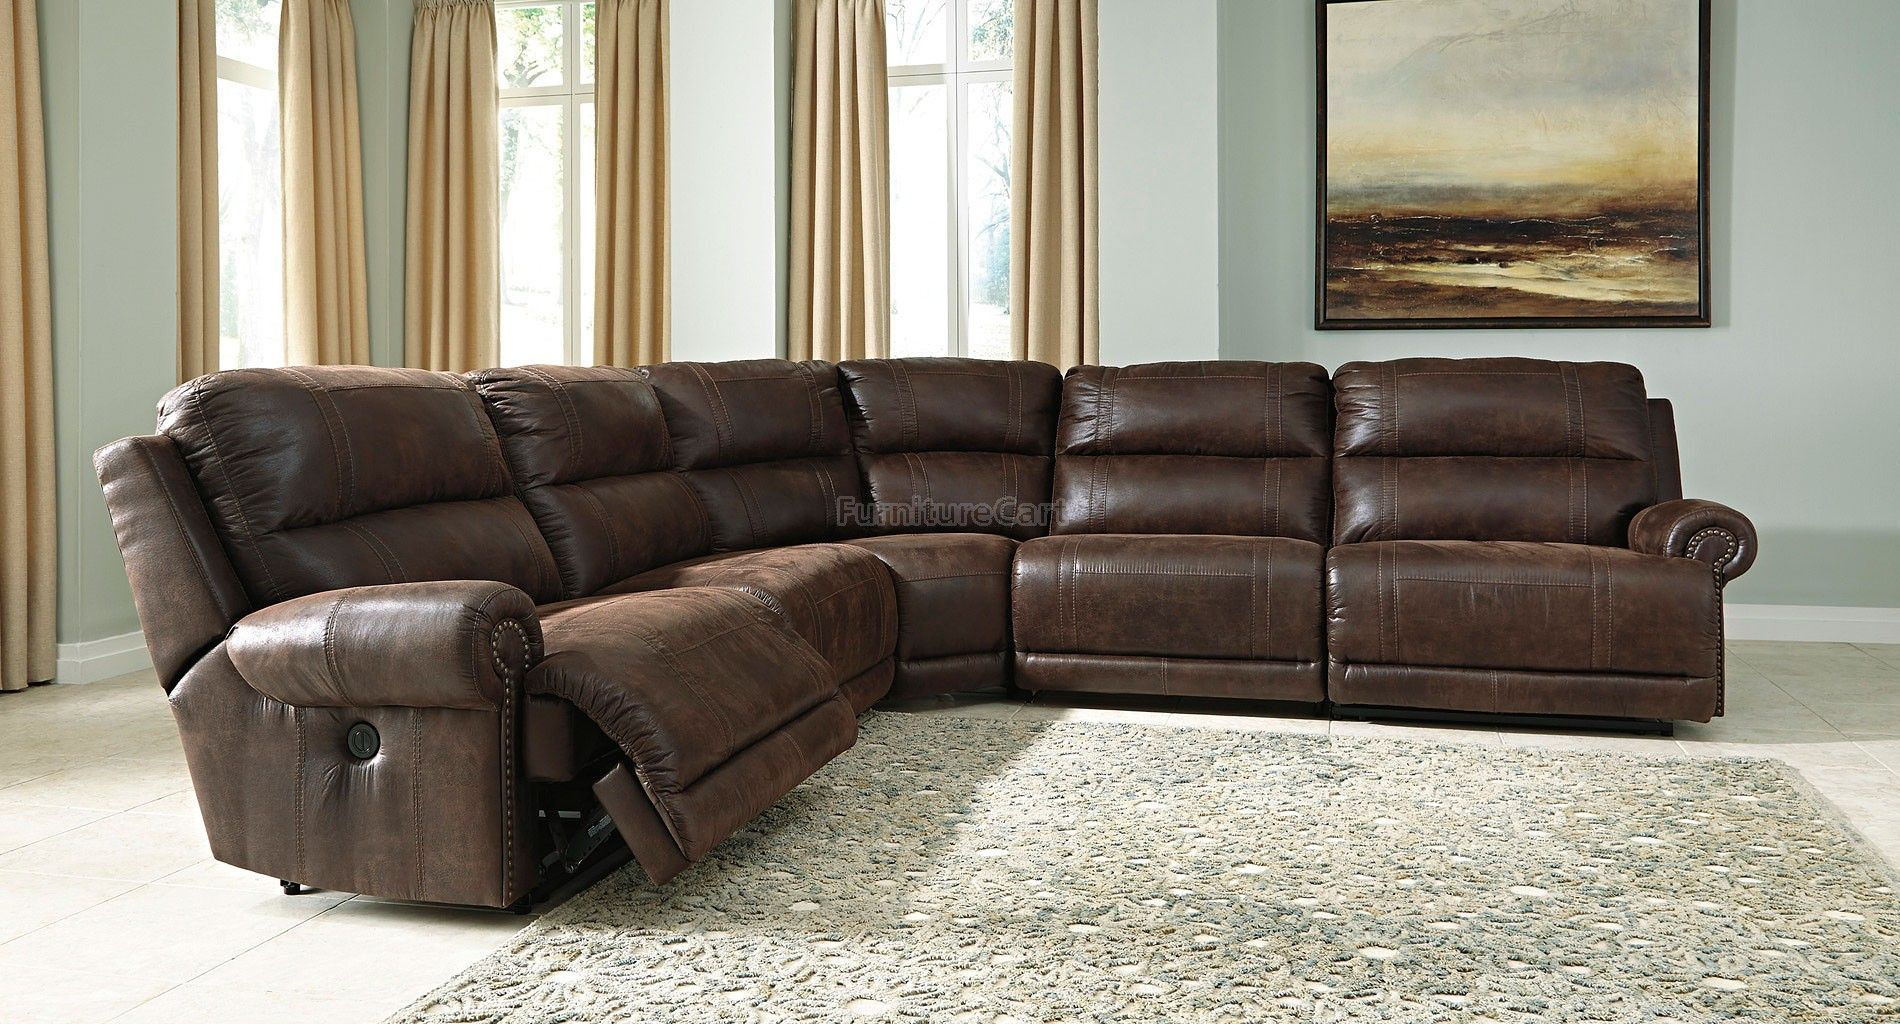 Luttrell Espresso Modular Reclining Sectional Espresso Leather